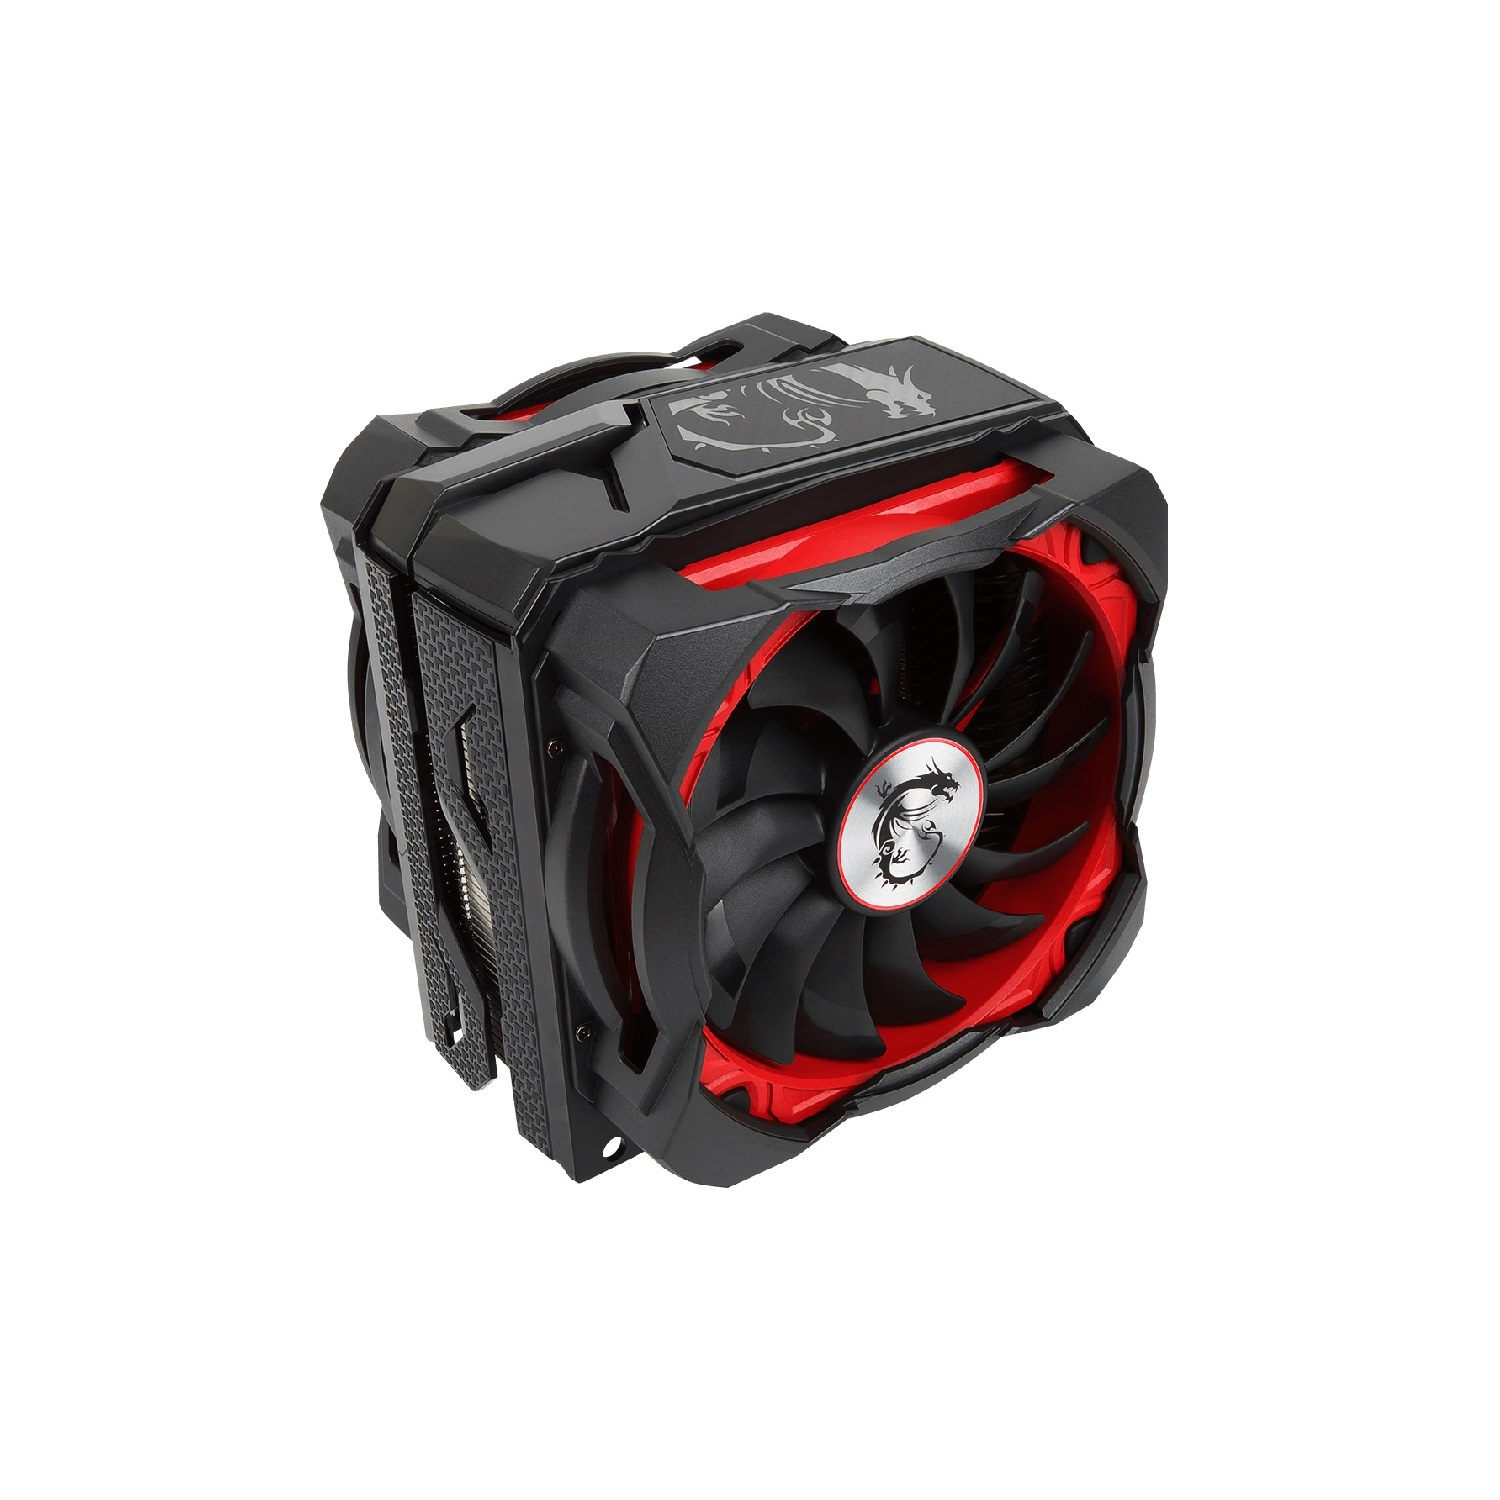 MSI Core Frozr XL CPU cooler